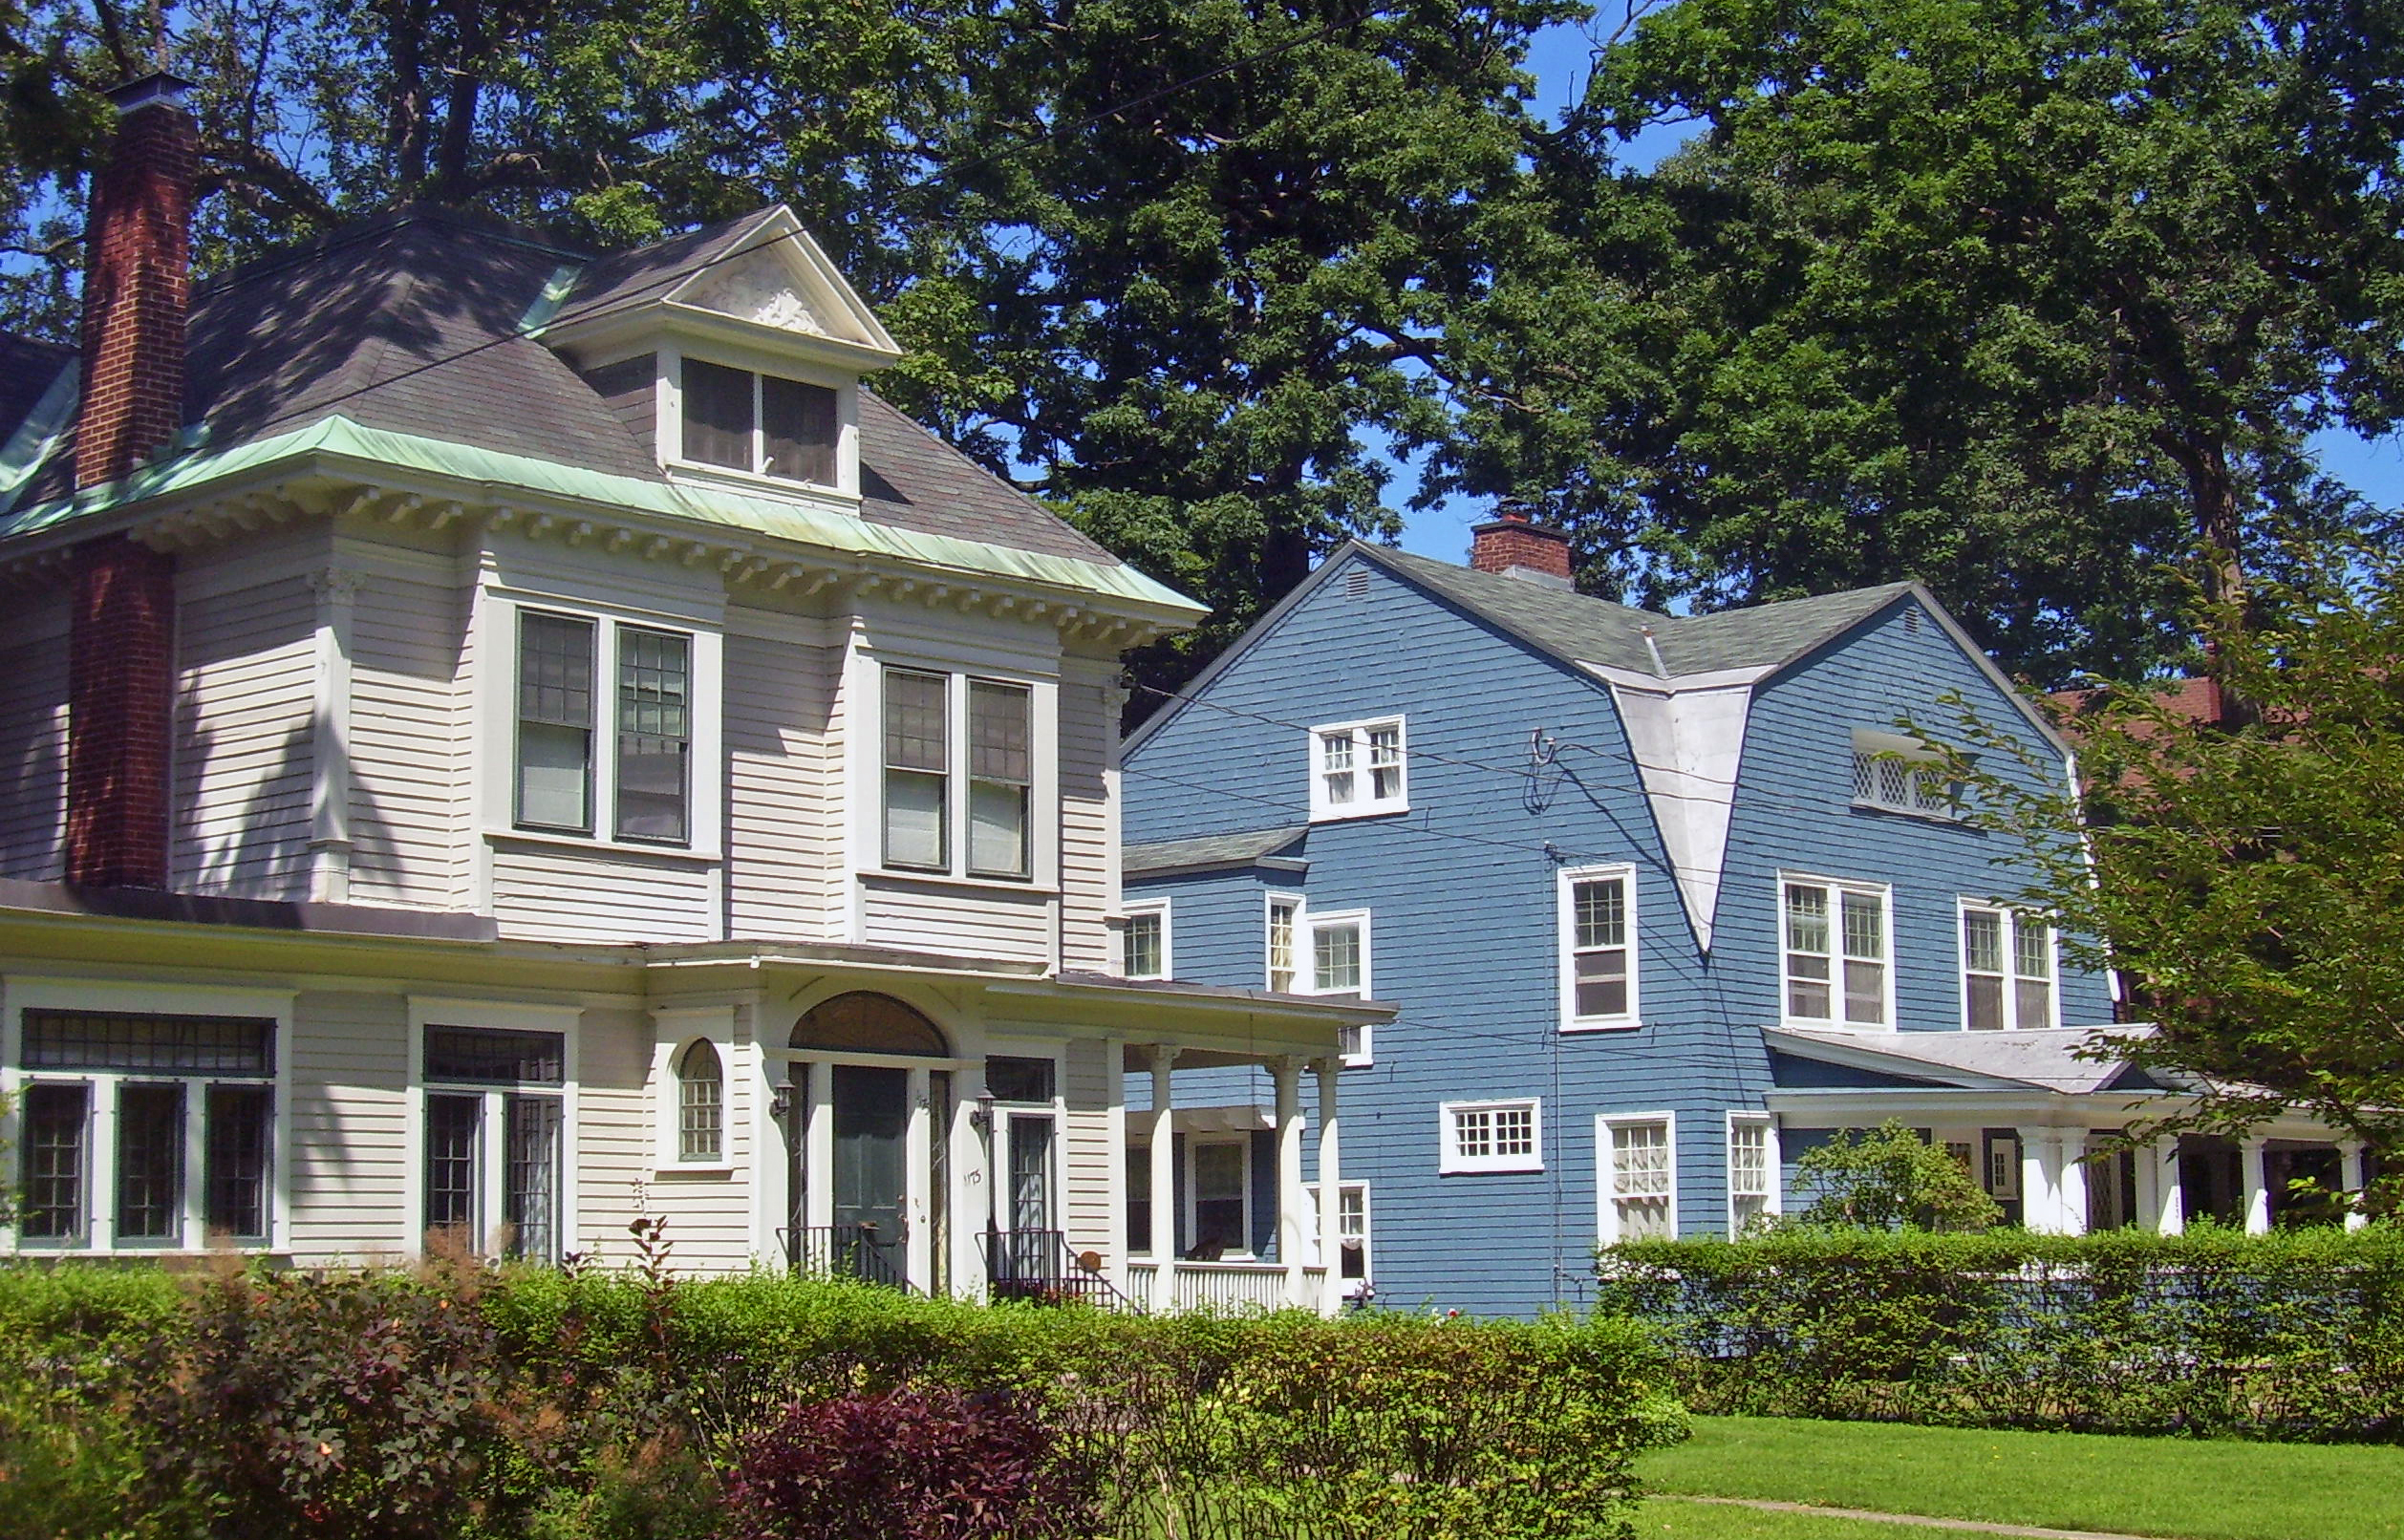 Schenectady (NY) United States  City new picture : Houses on Stratford Road, Schenectady, NY Wikipedia, the ...